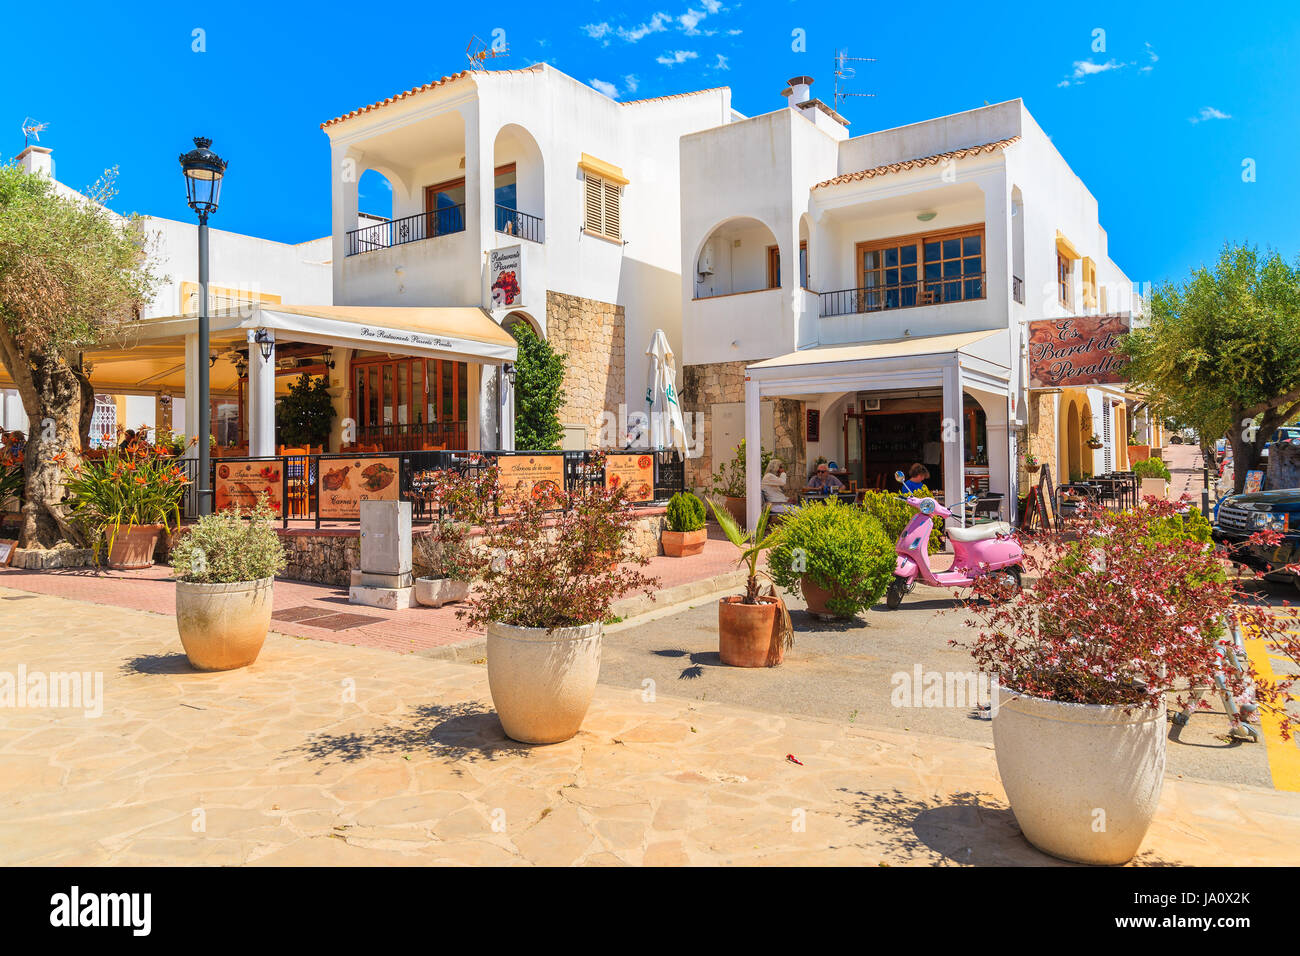 ibiza island, spain - may 18, 2017: traditional restaurant